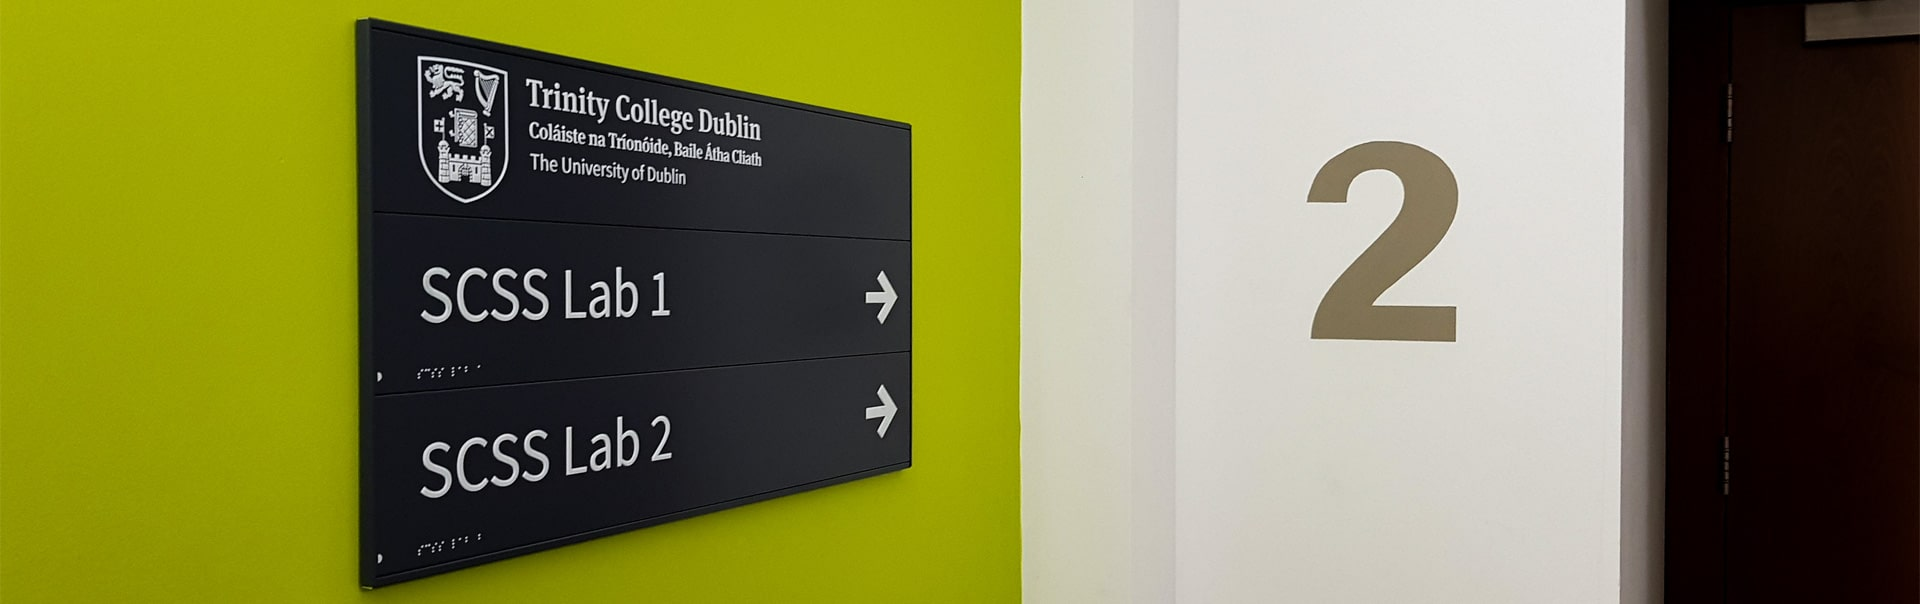 This braille wayfinding sign makes Trinity College Dublin accessible to all